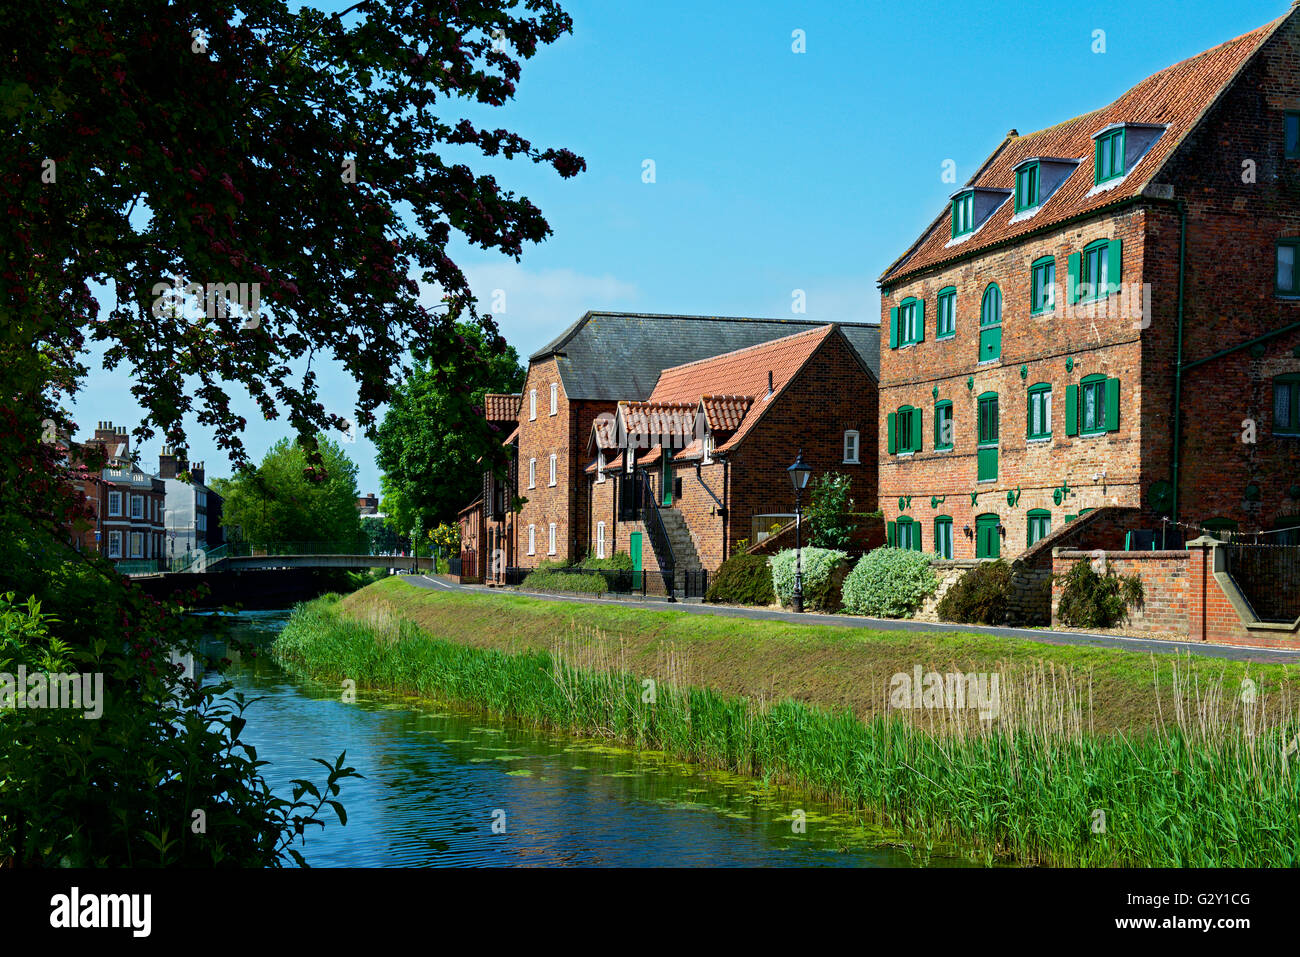 the-river-welland-in-spalding-lincolnshire-england-uk-G2Y1CG.jpg